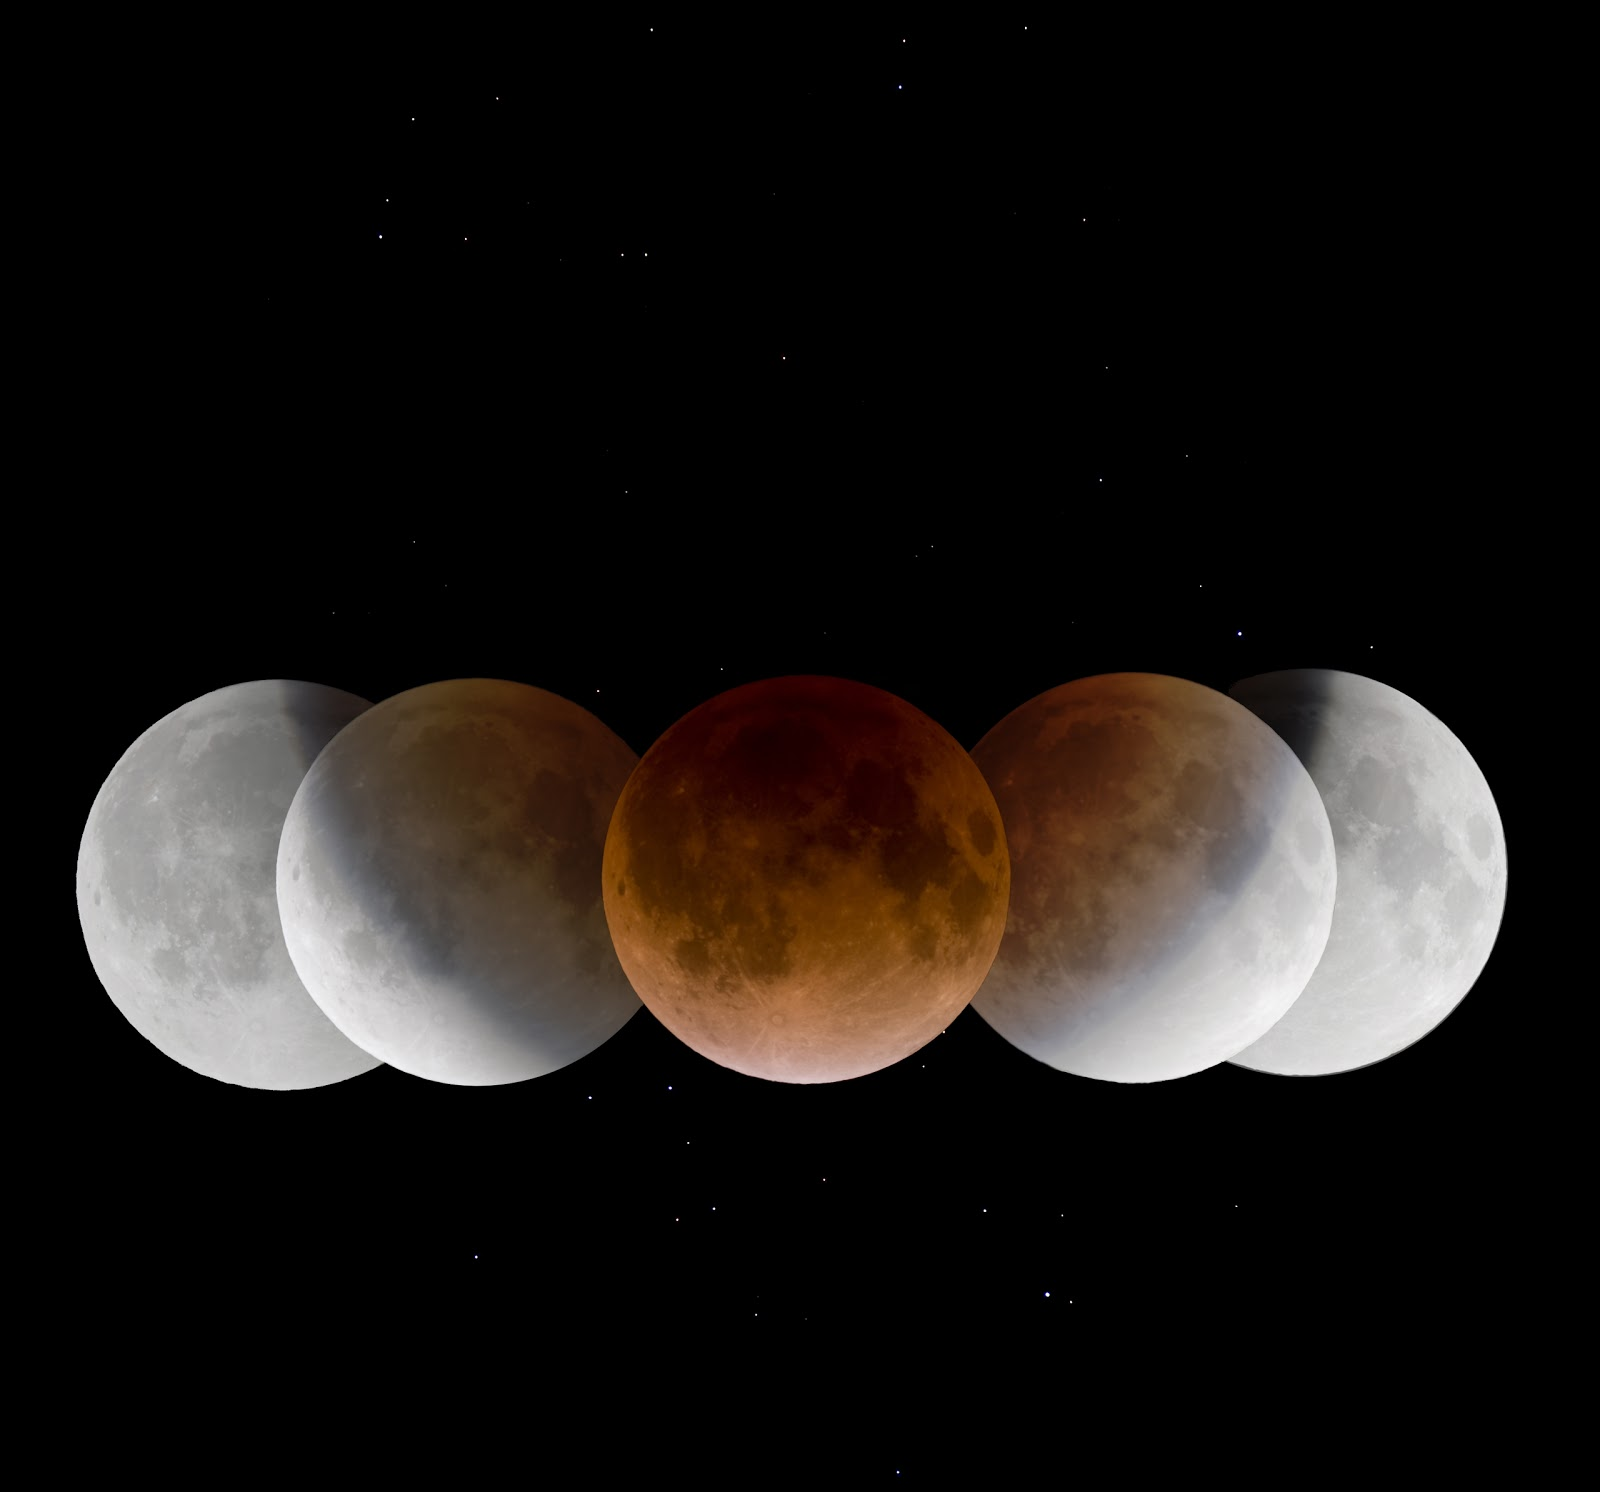 lunar phases in space - photo #29